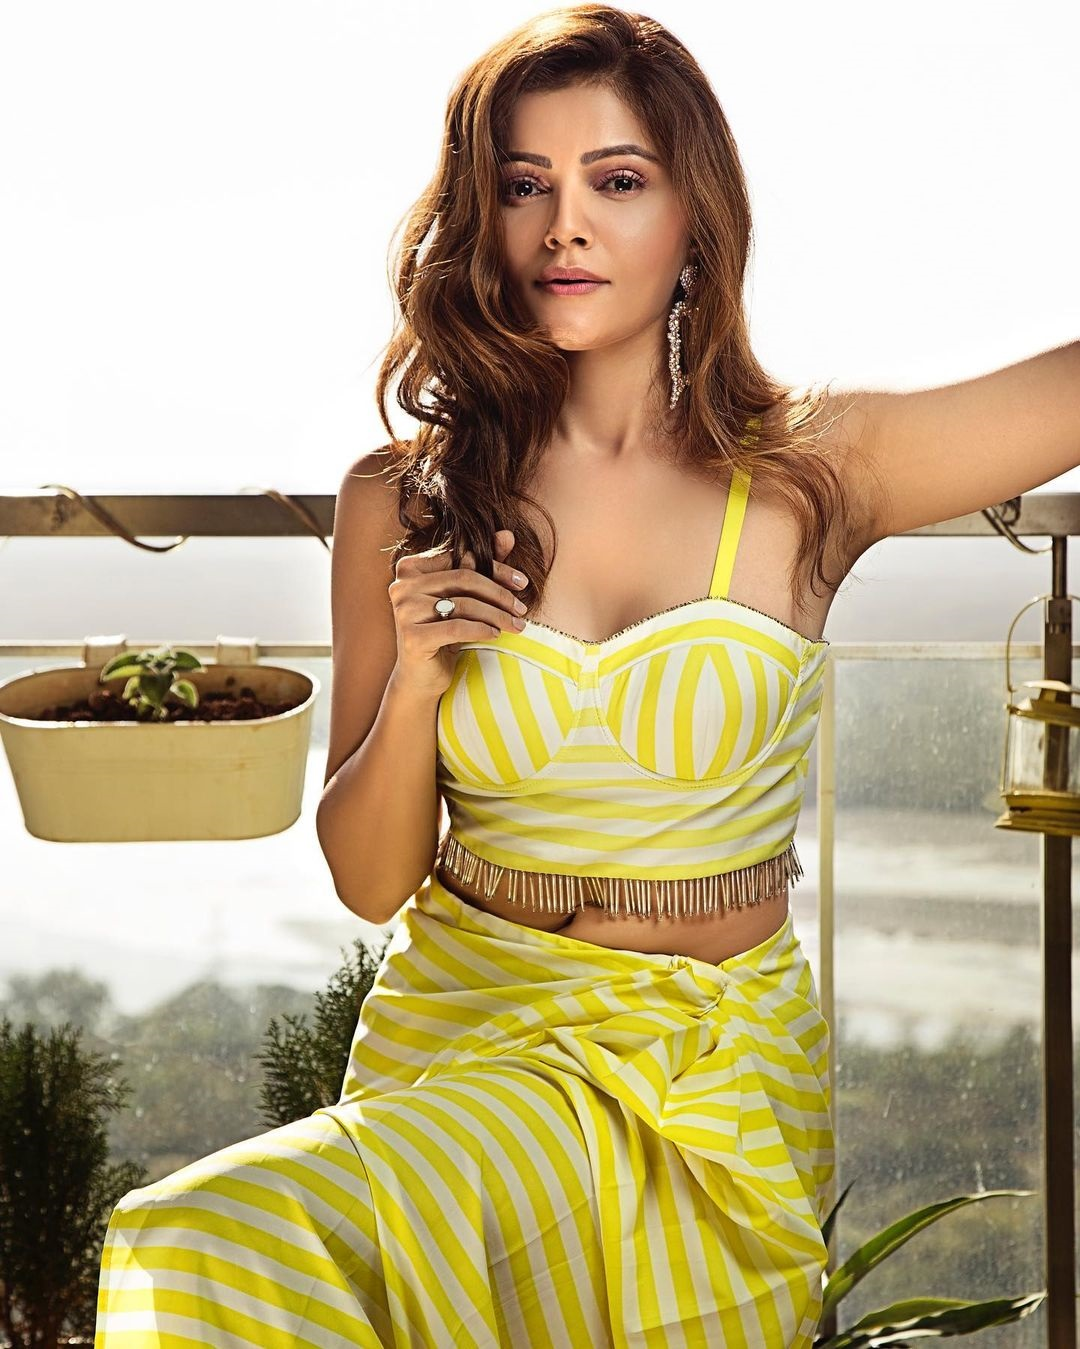 8 Pictures Of Bigg Boss Contestant Rubina Dilaik You Should Not Miss Today 6